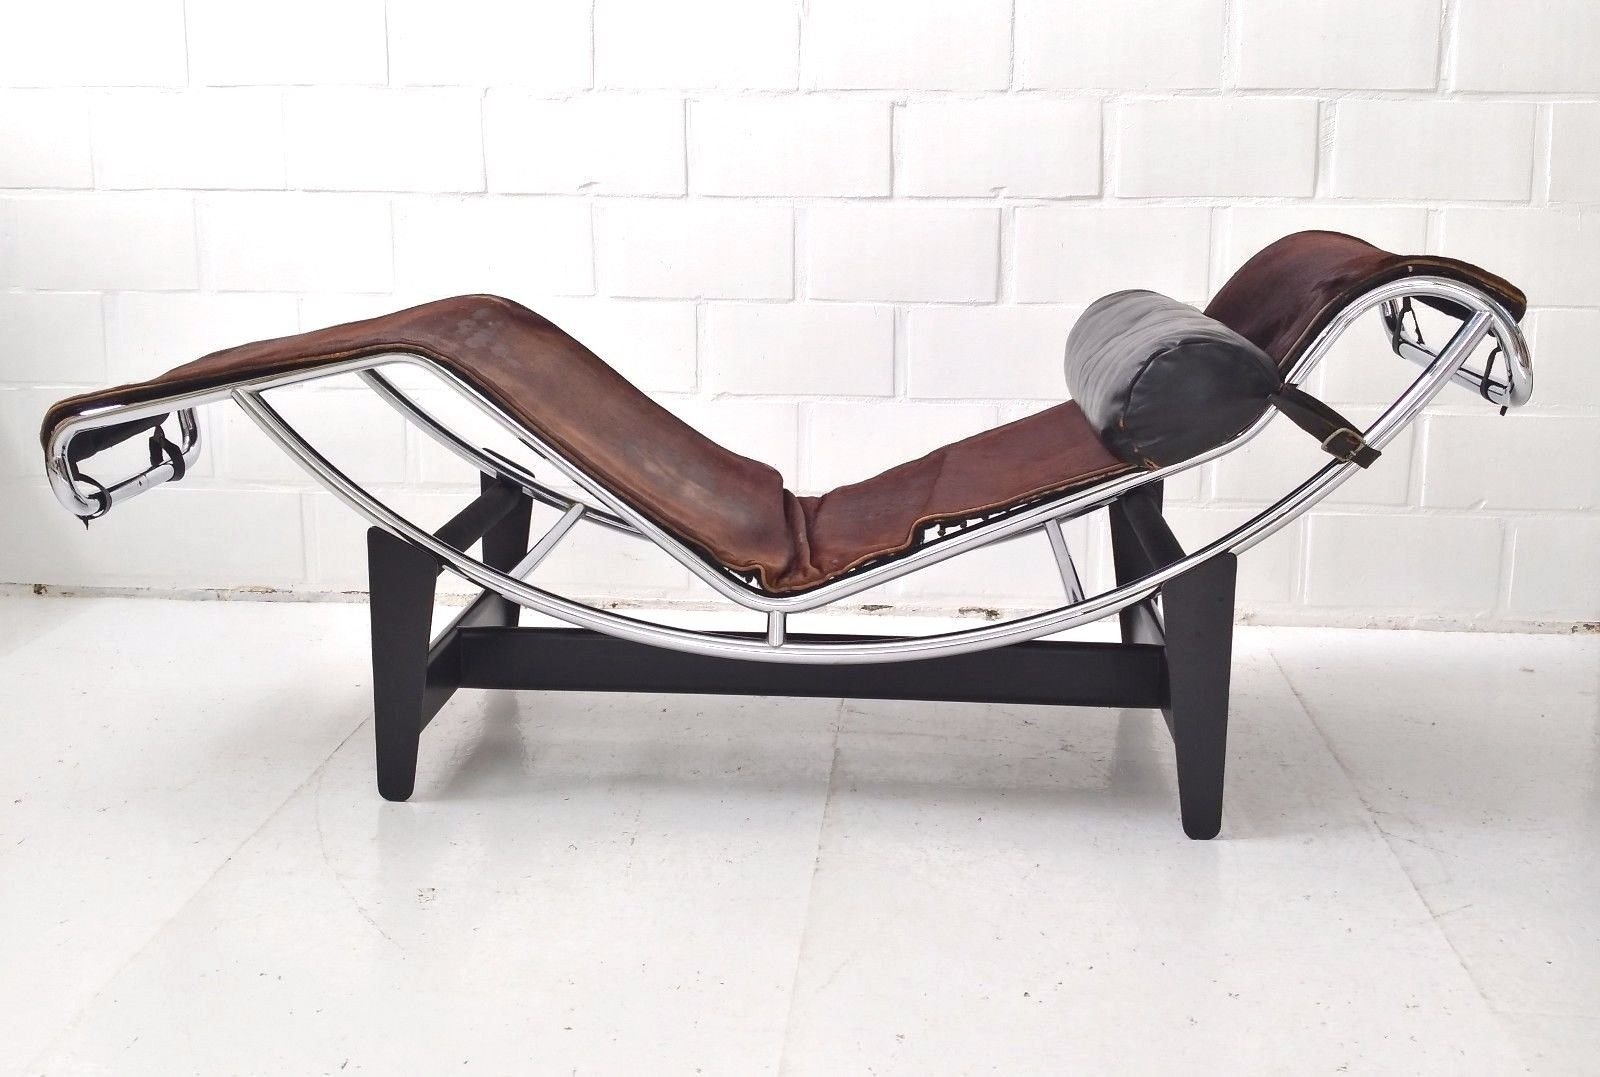 Lc4 chaise longue by le corbusier charlotte perriand - Chaise longue hesperide ...